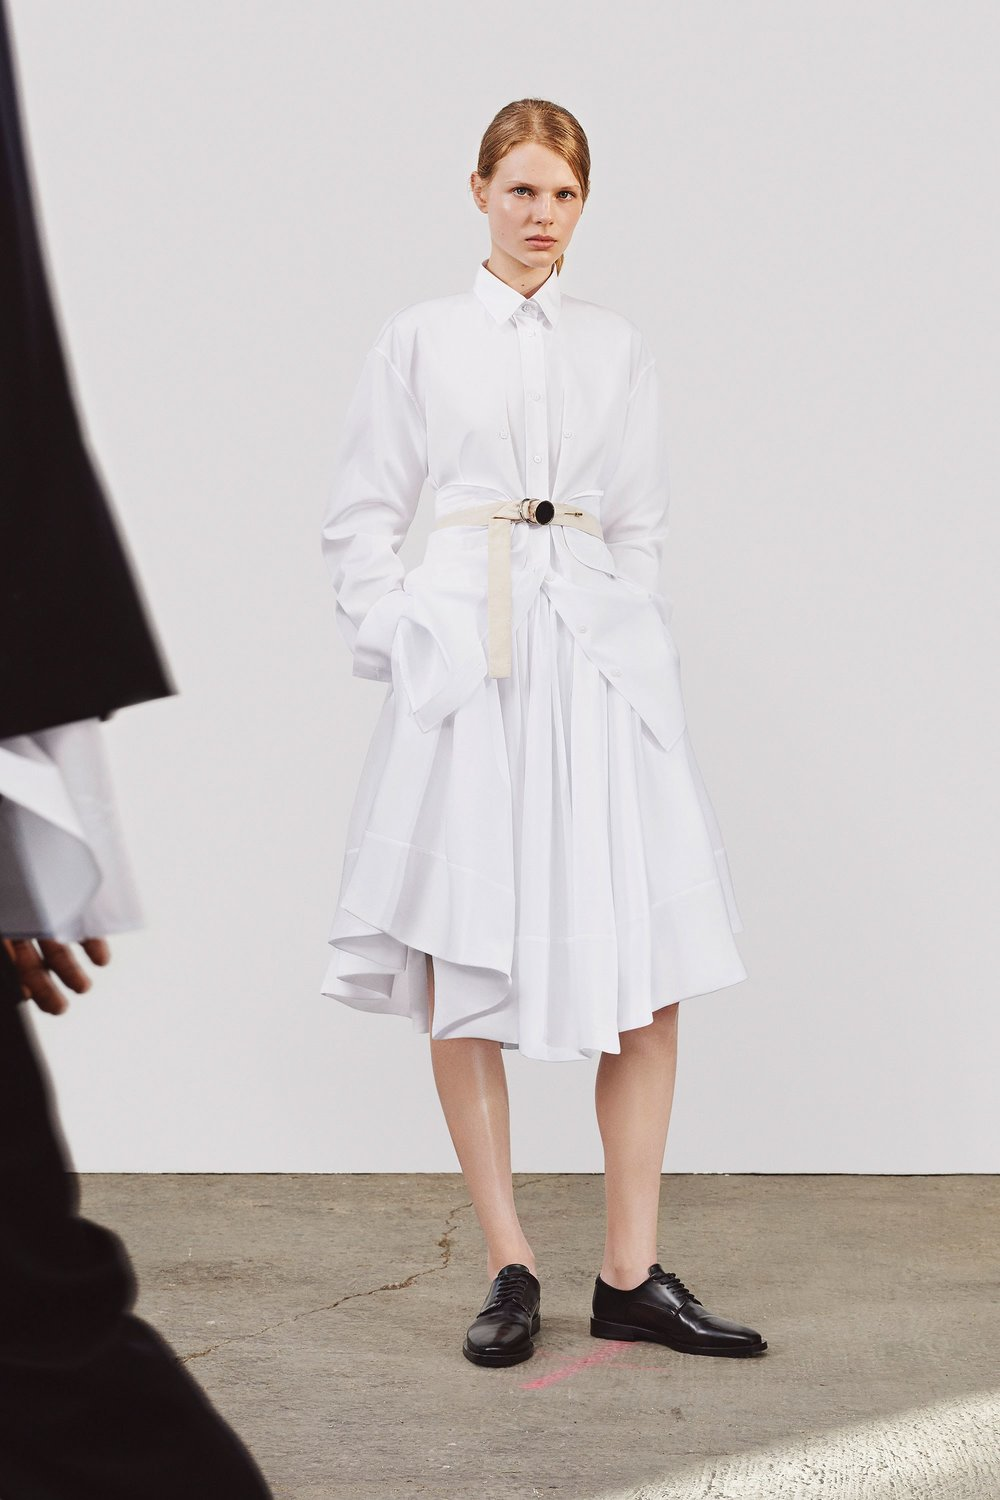 Jil Sander Resort 2018, image via The Impression